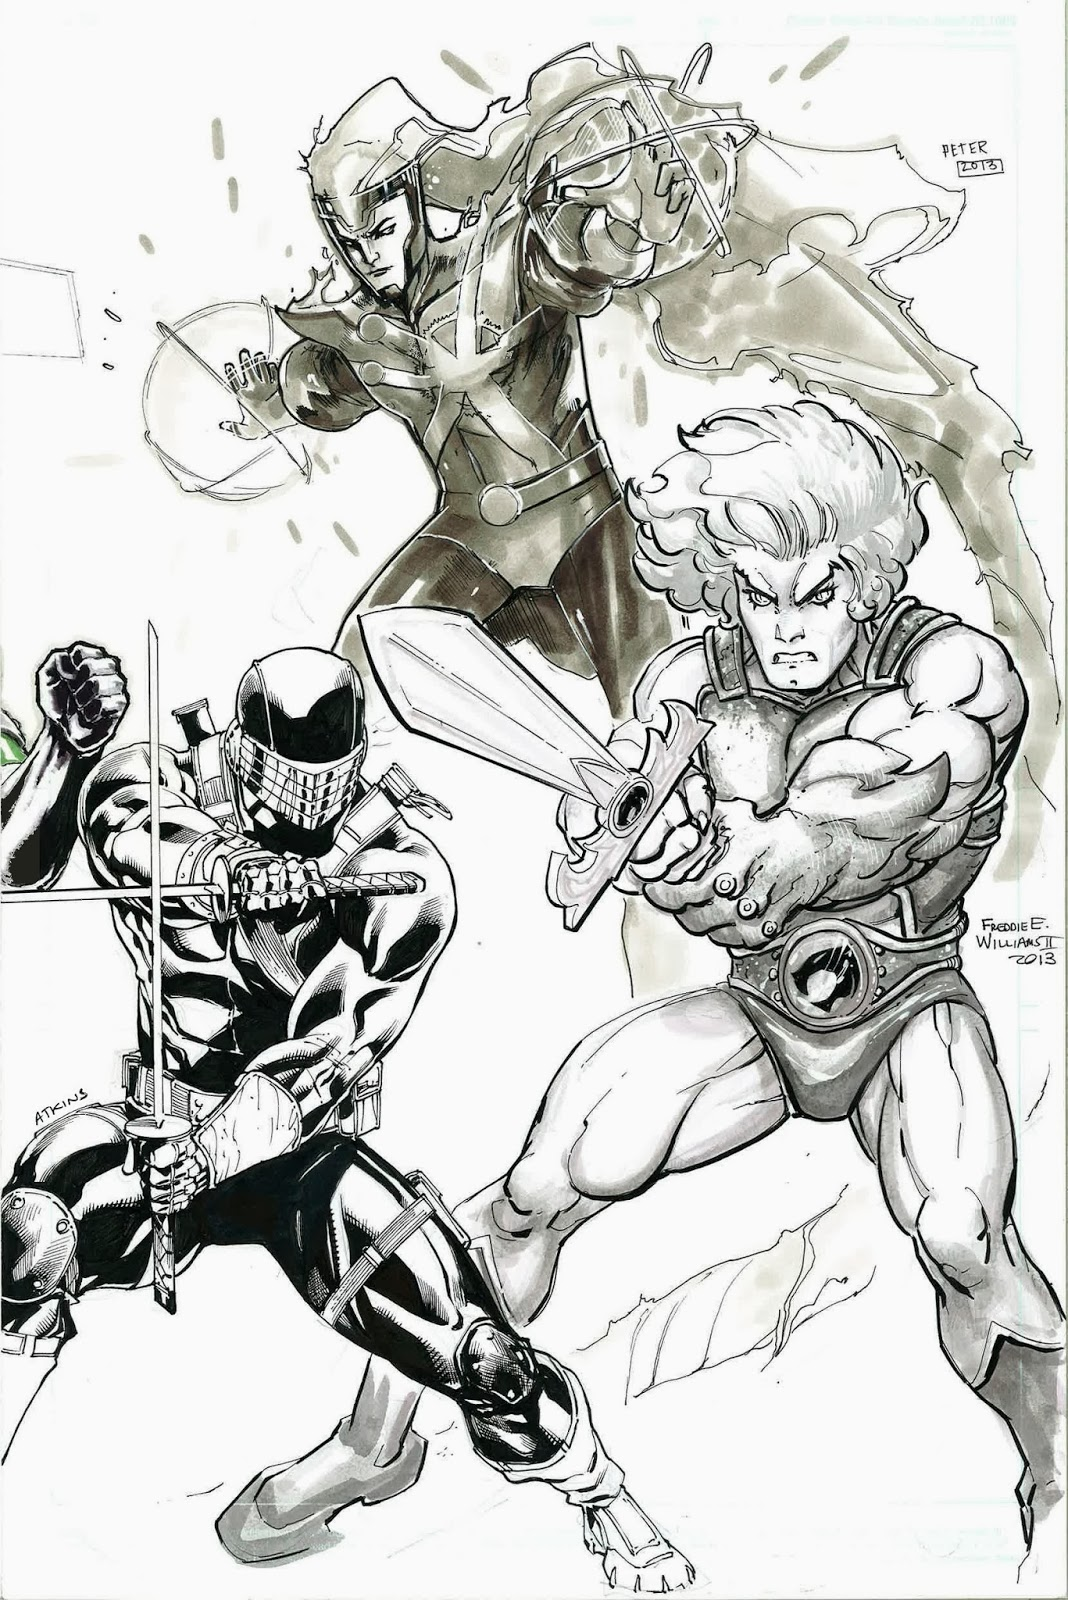 1980s Cartoon Jam Sketch - Snake Eyes by Robert Atkins, Firestorm by Peter Nguyen, and Lion-O by Freddie E Williams II